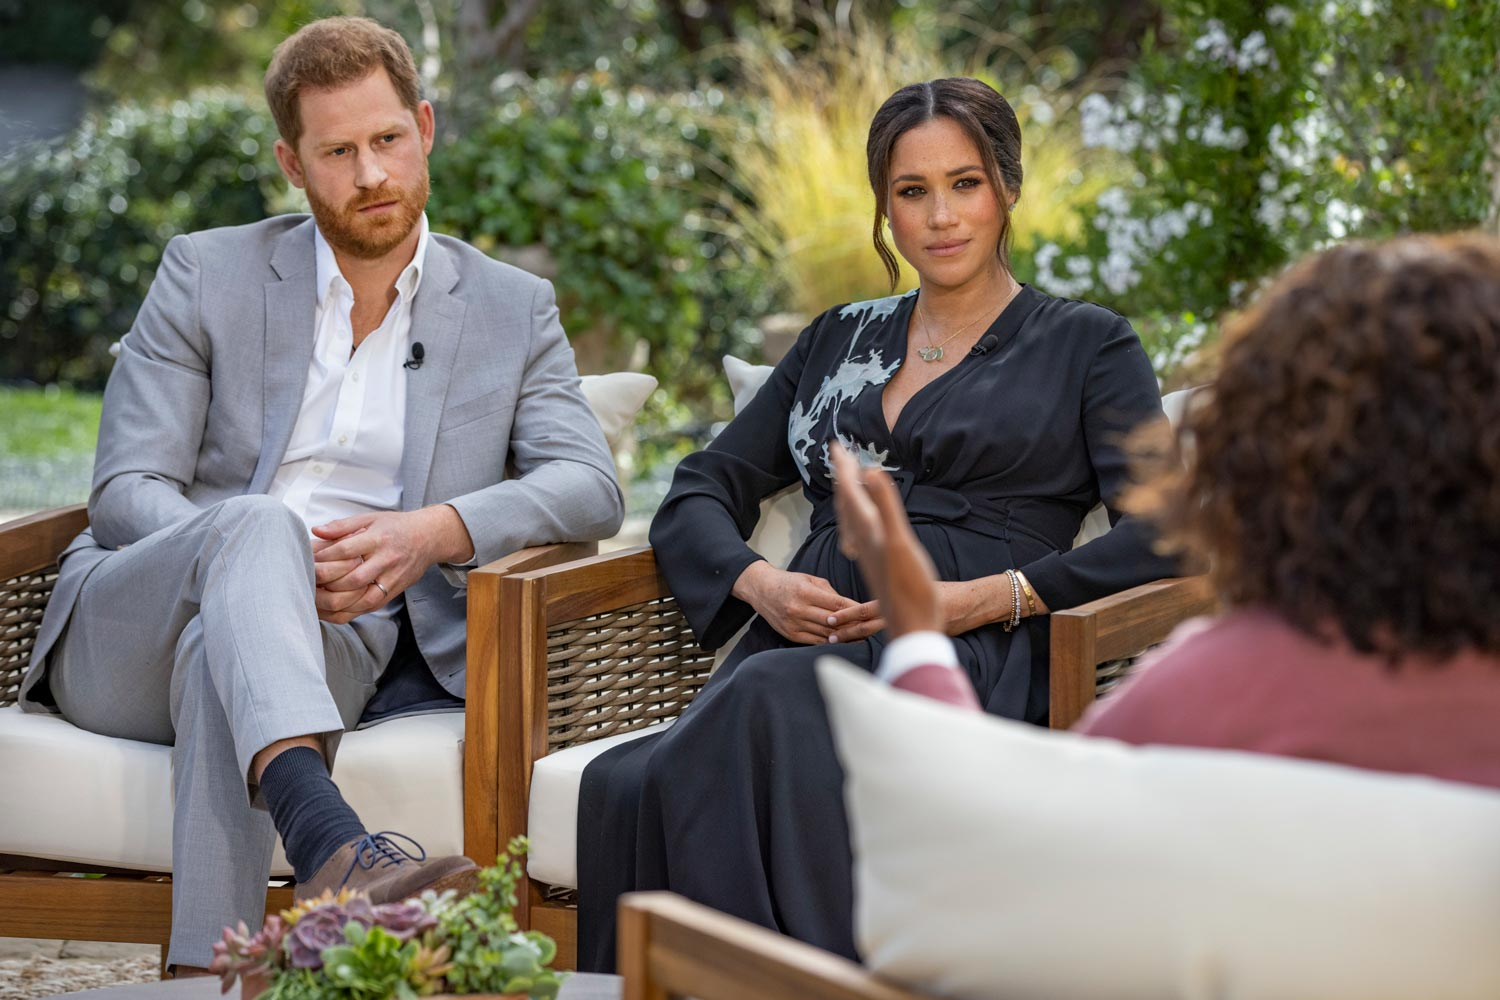 Oprah's royal interview attracts 12.4 million U.K. viewers as advertisers pile in